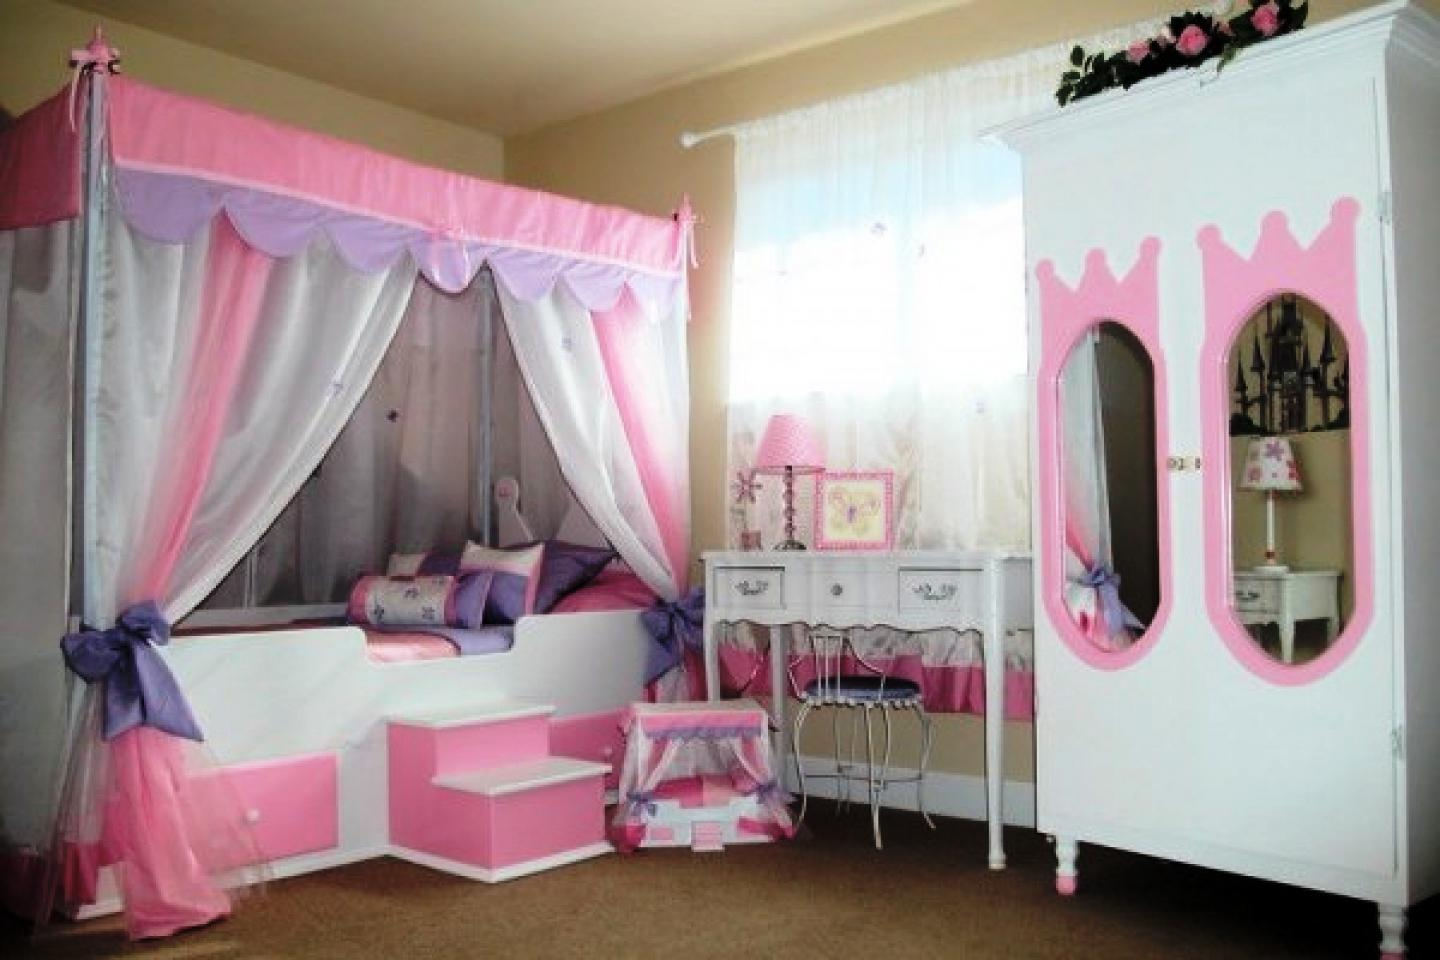 decorating a little girlメs room ideas photo - 10